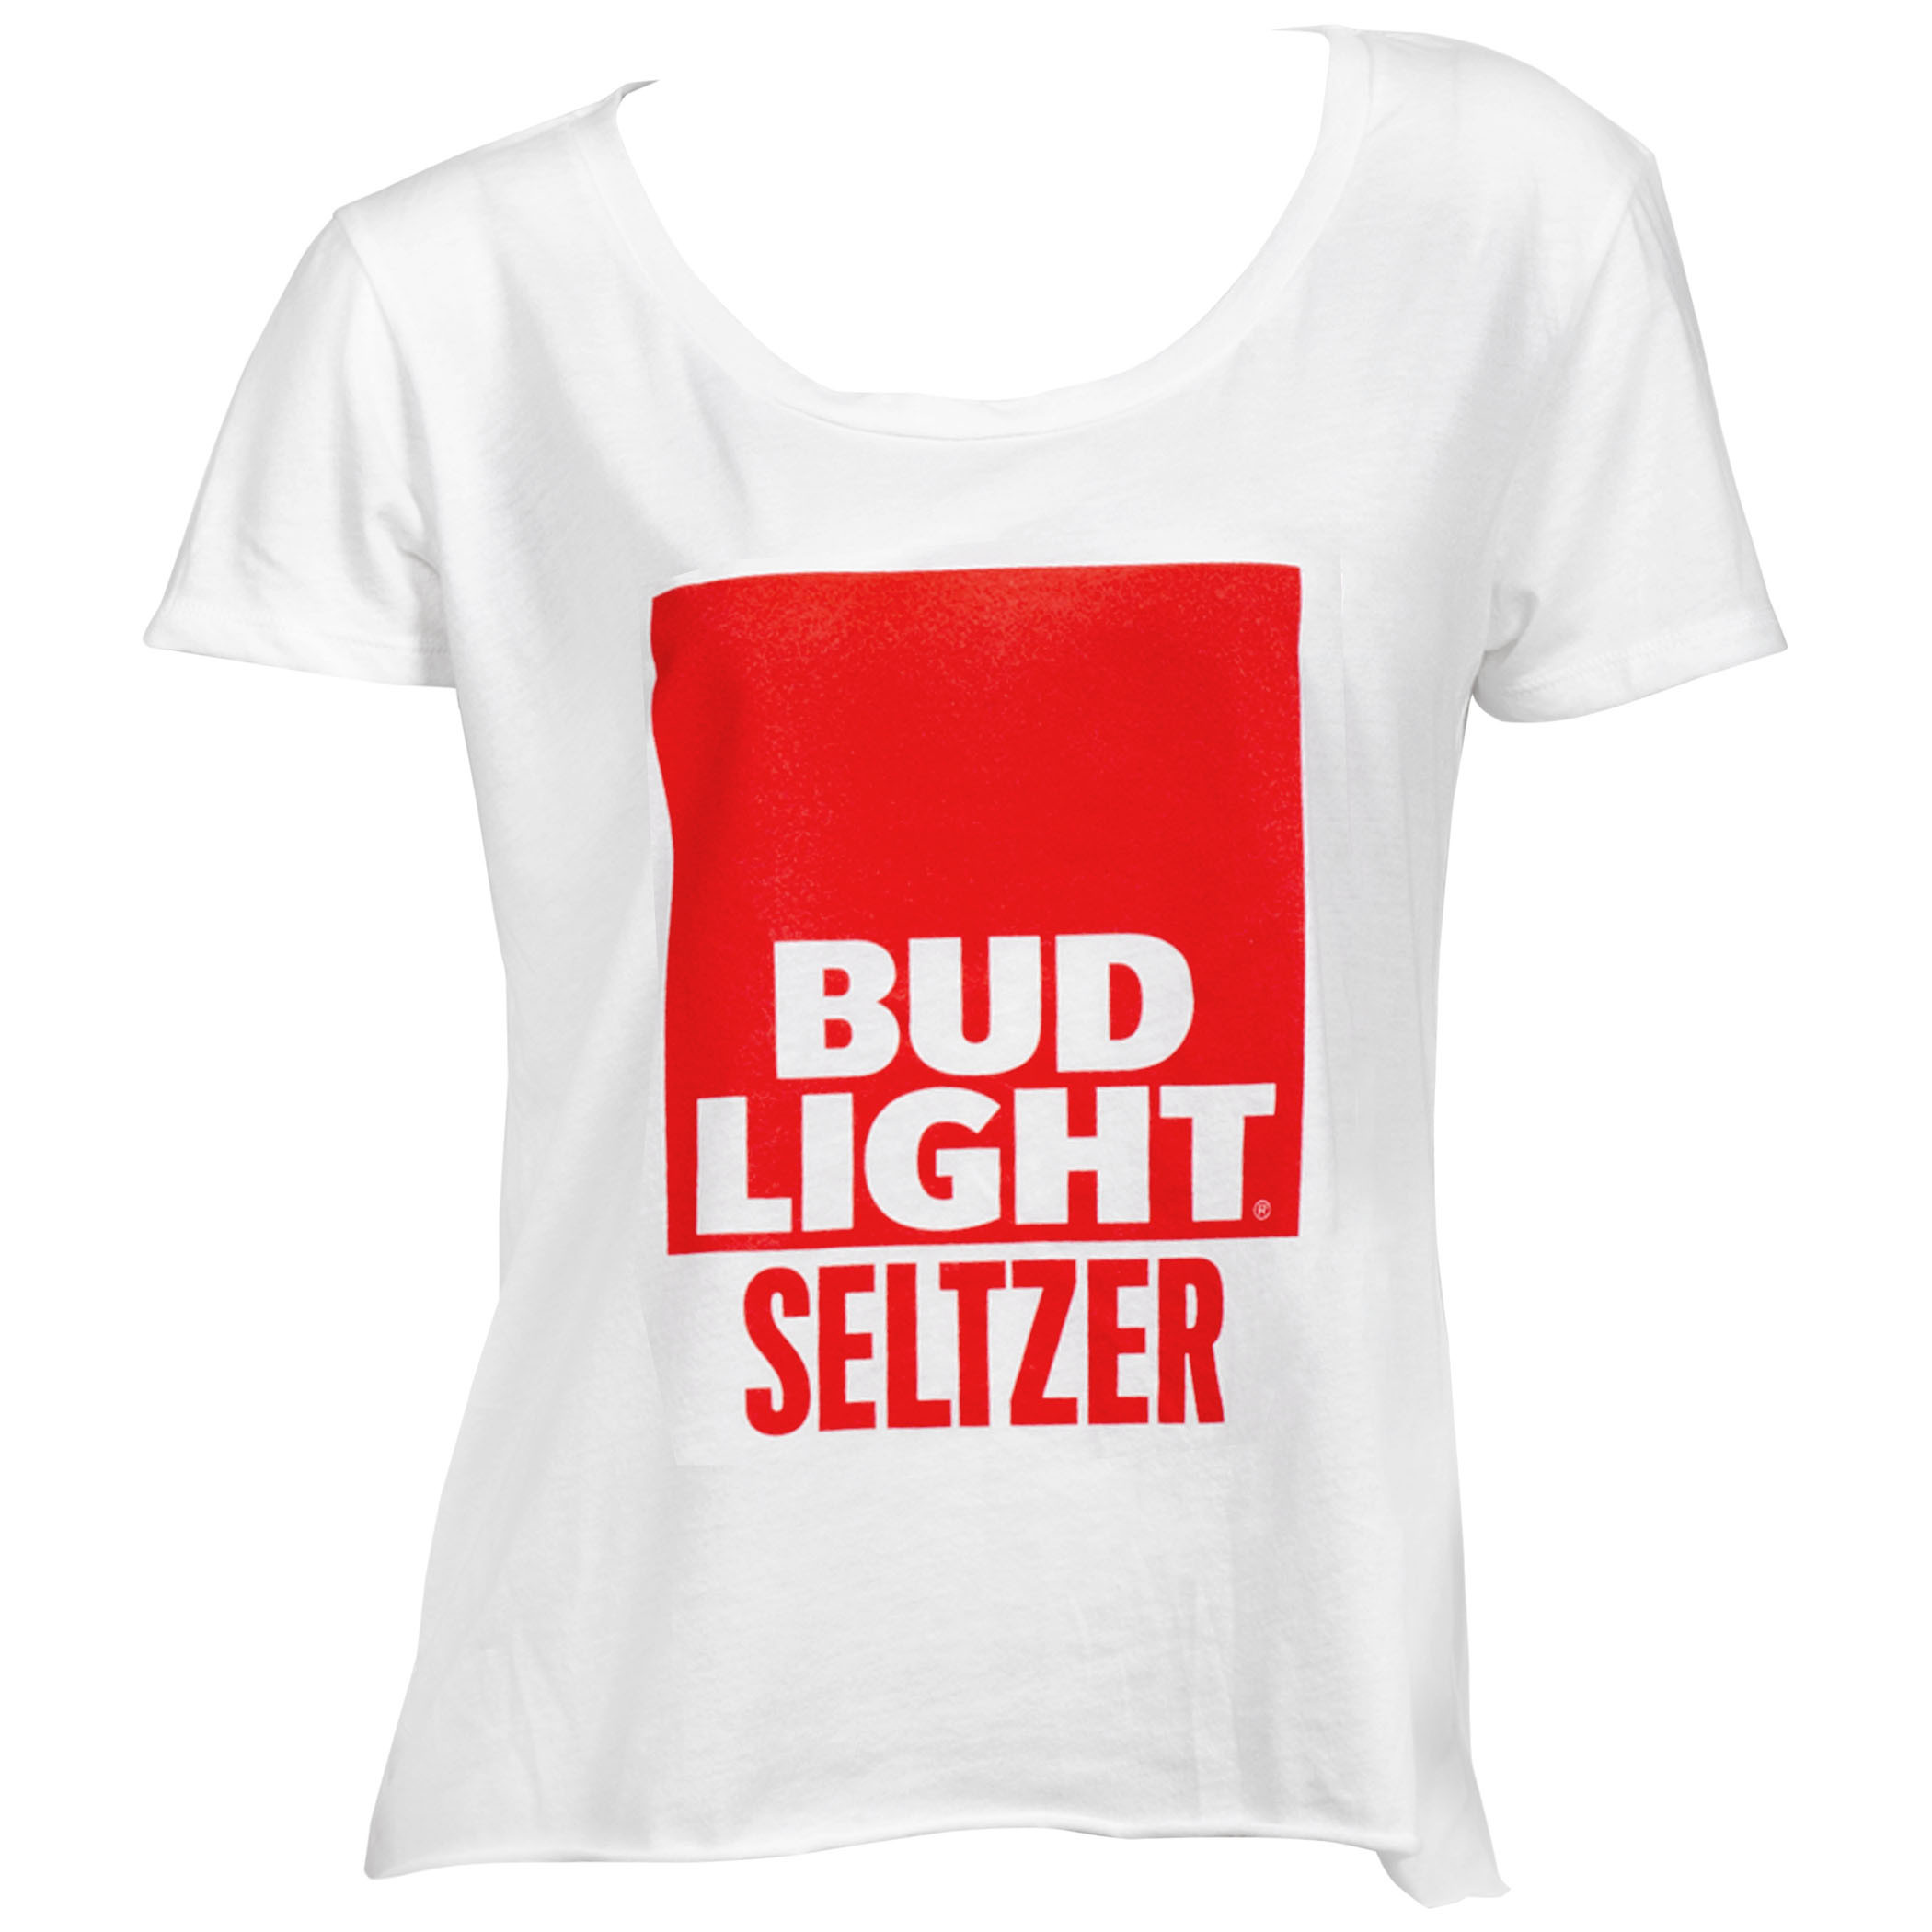 Bud Light Seltzer Women's Crop Top T-Shirt